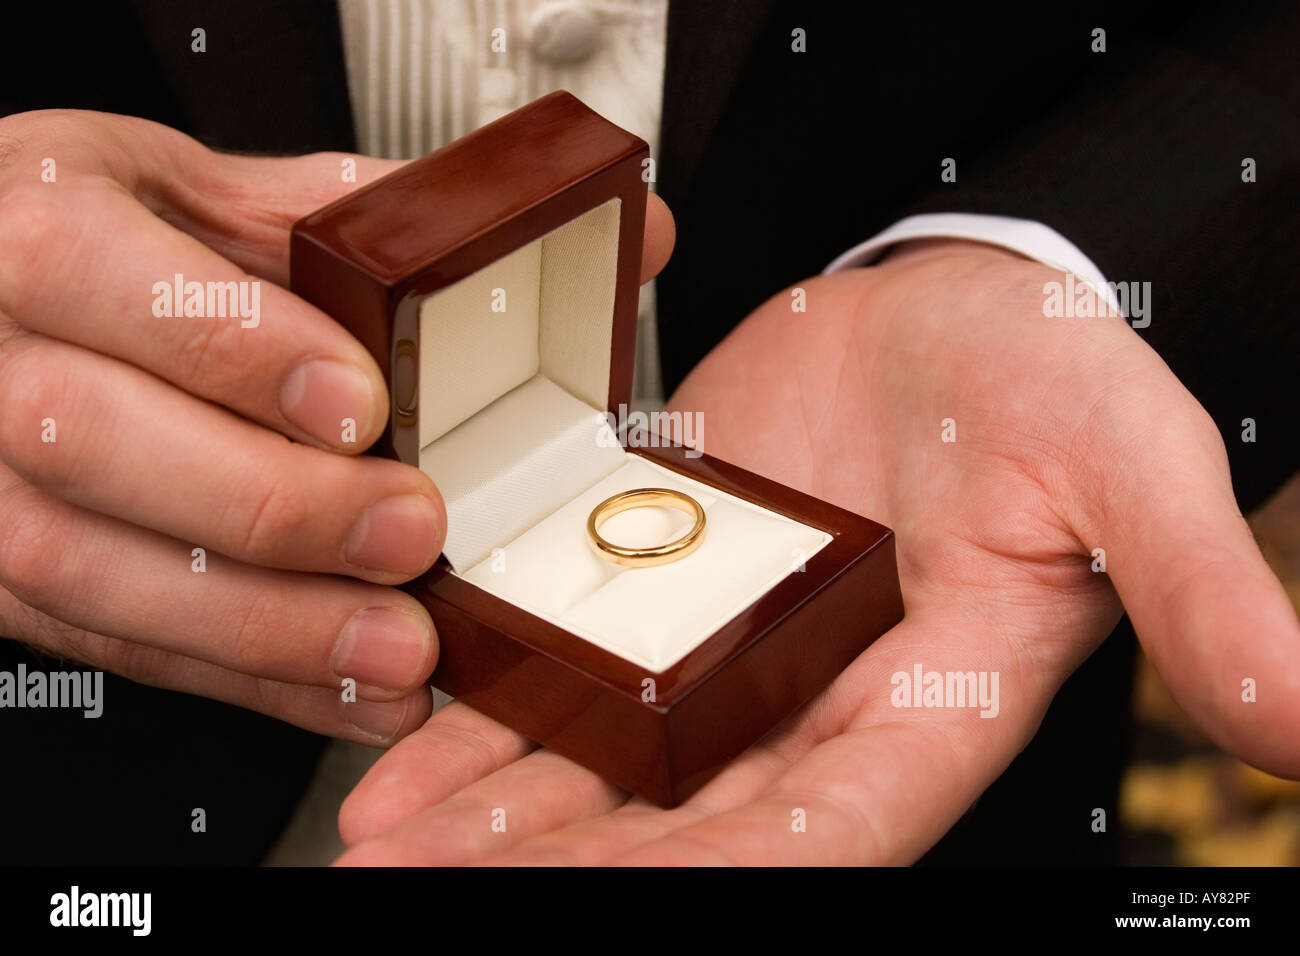 weddings best man holding boxed wedding ring in palm of hand - Stock Image